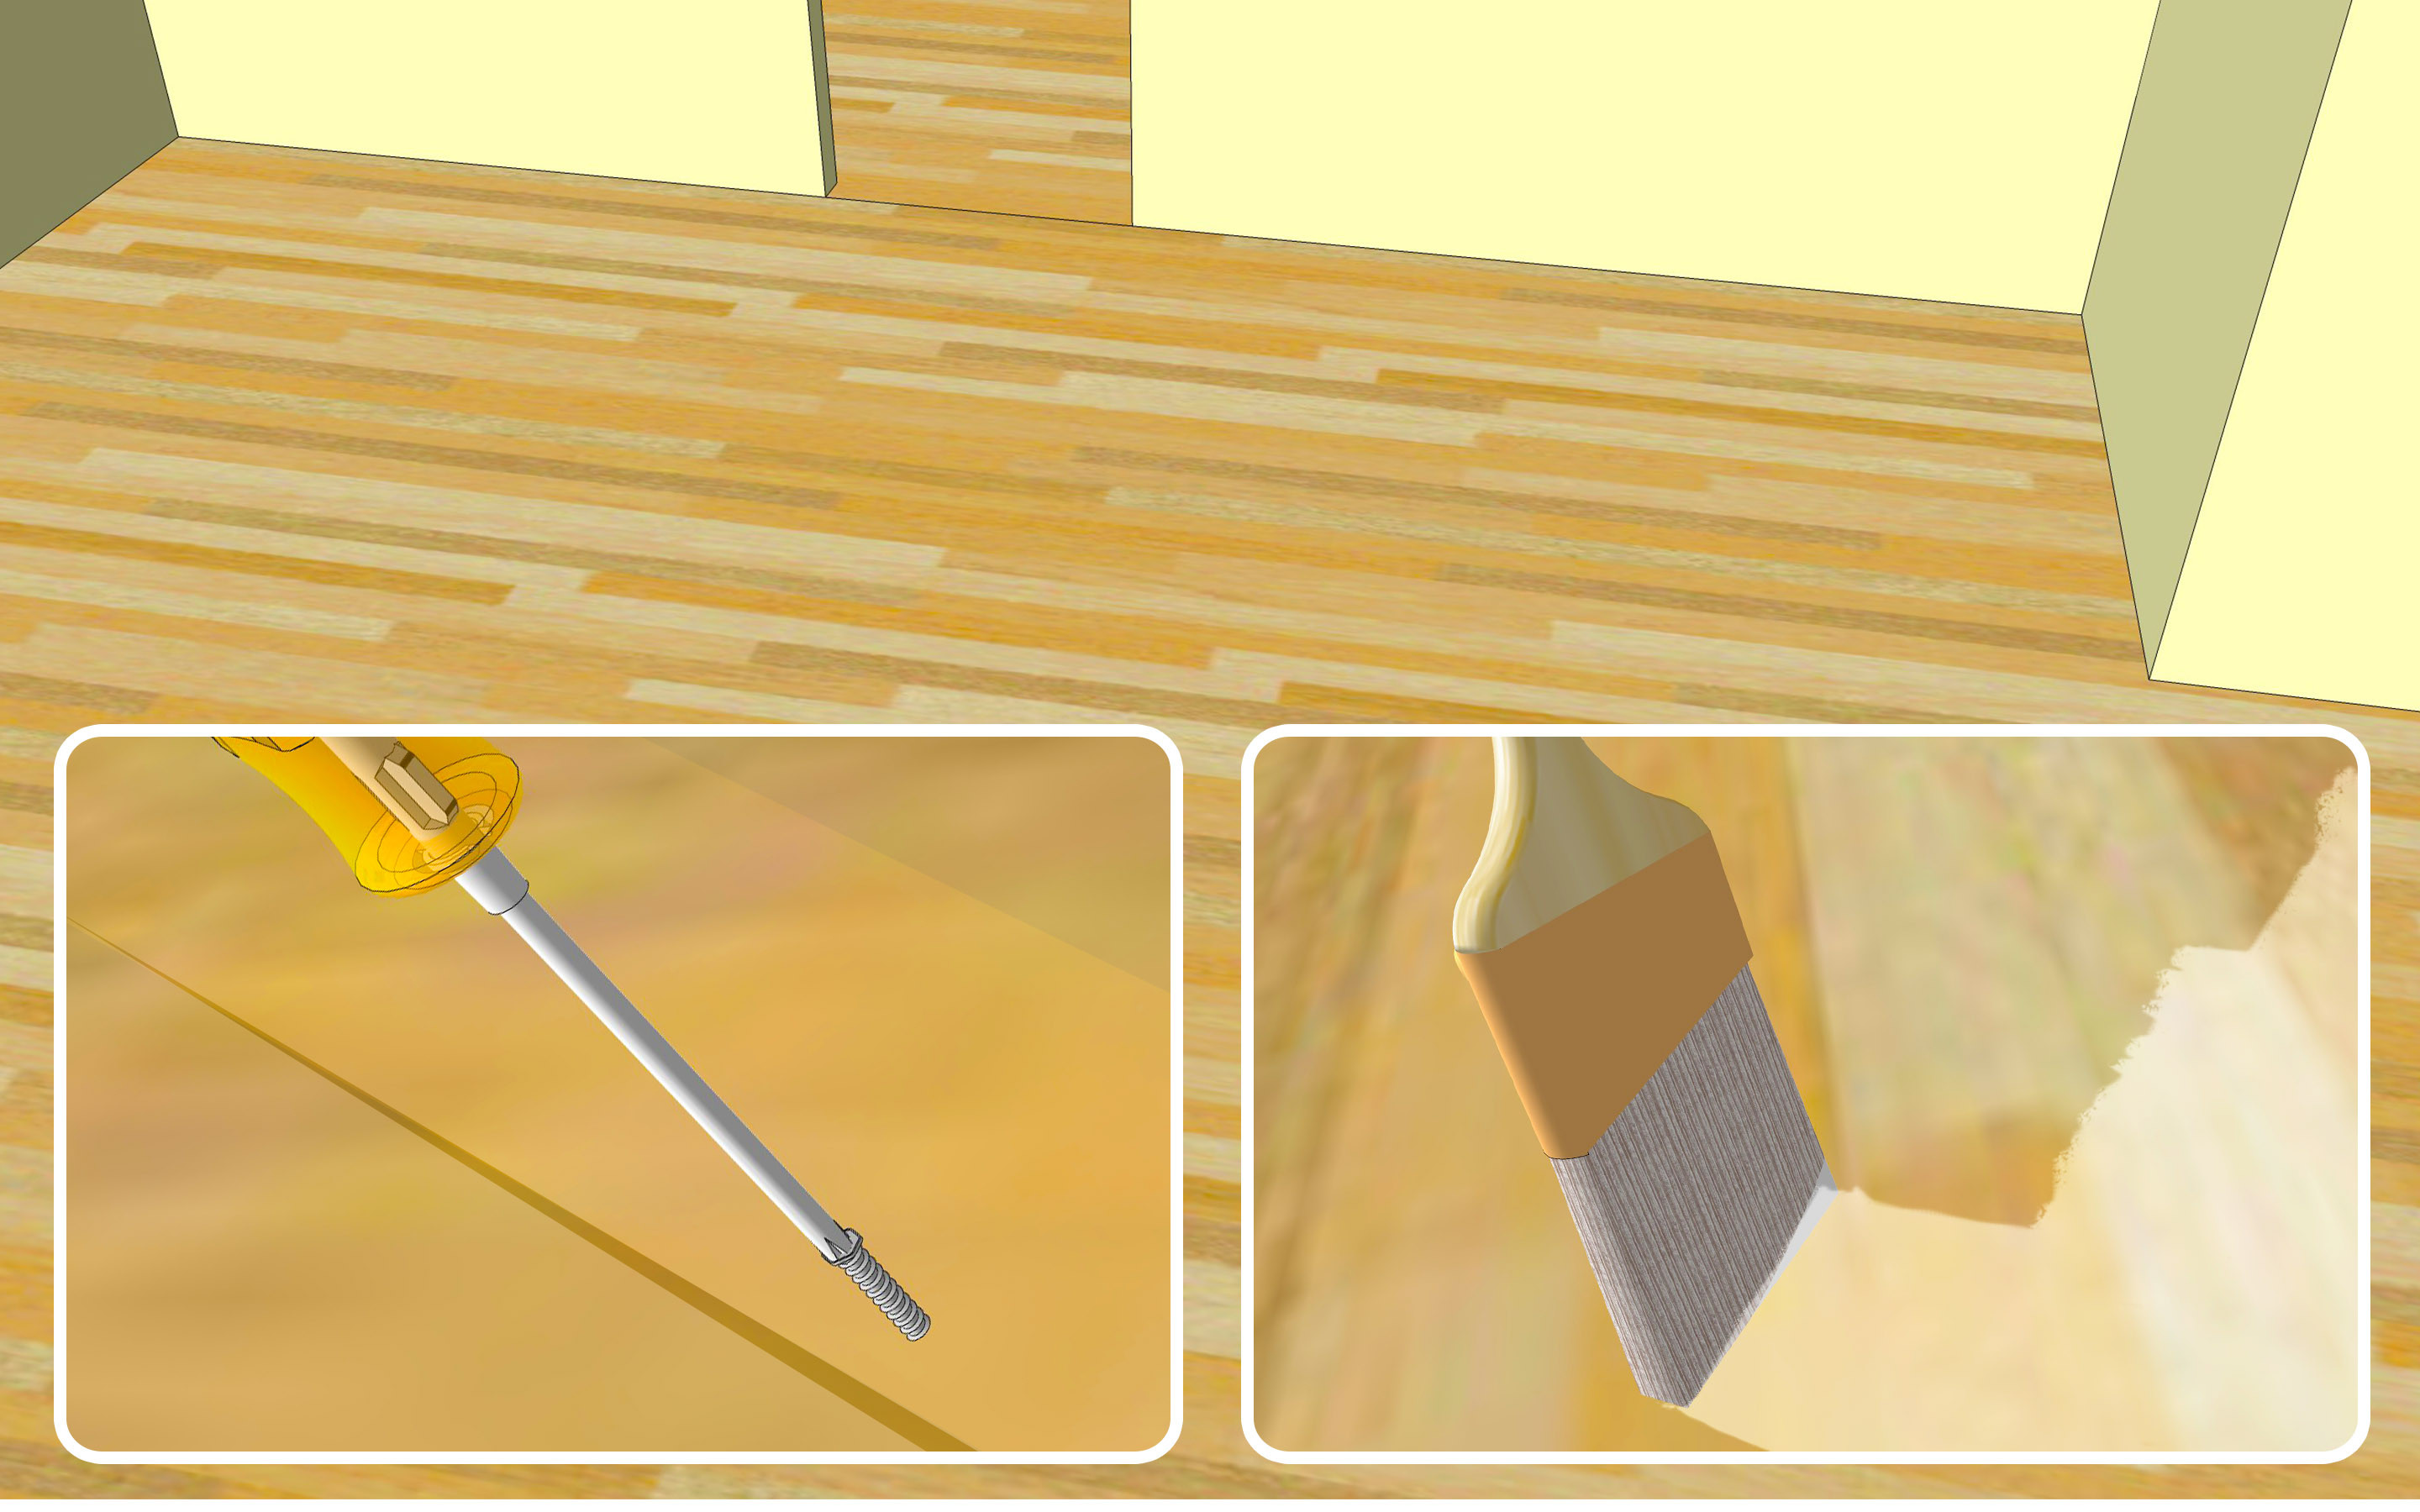 rug pads for hardwood floors of how to take out carpet 13 steps with pictures wikihow within take out carpet step 13 version 2